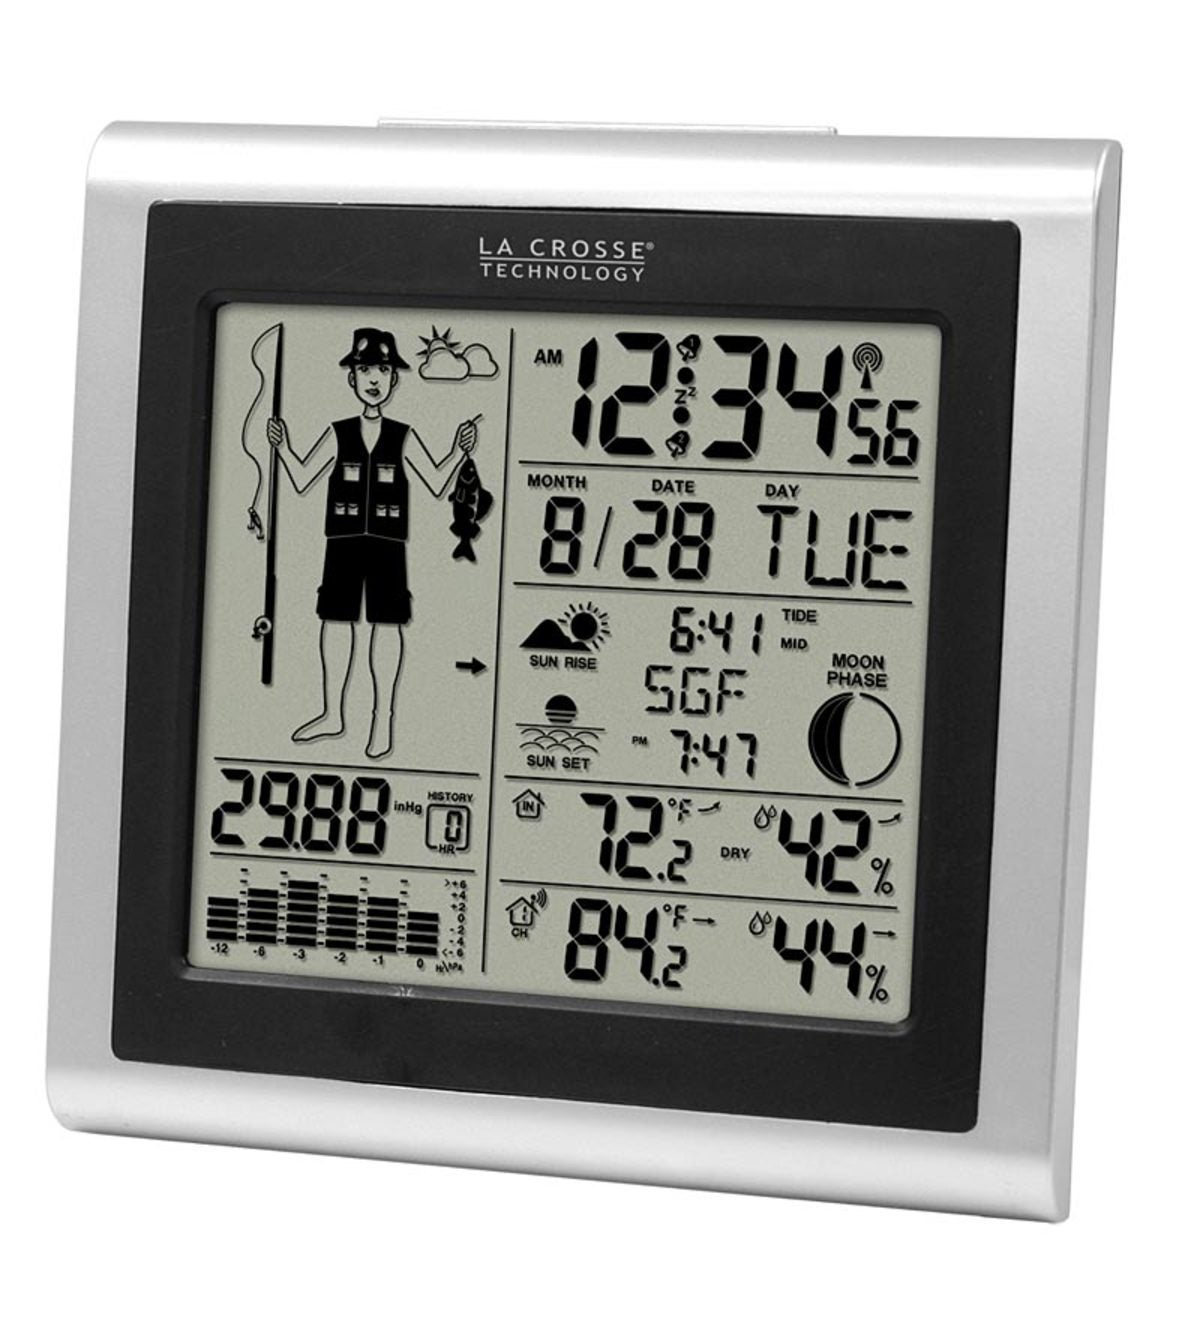 Fisherman Forecaster Weather Station By La Crosse Technology®